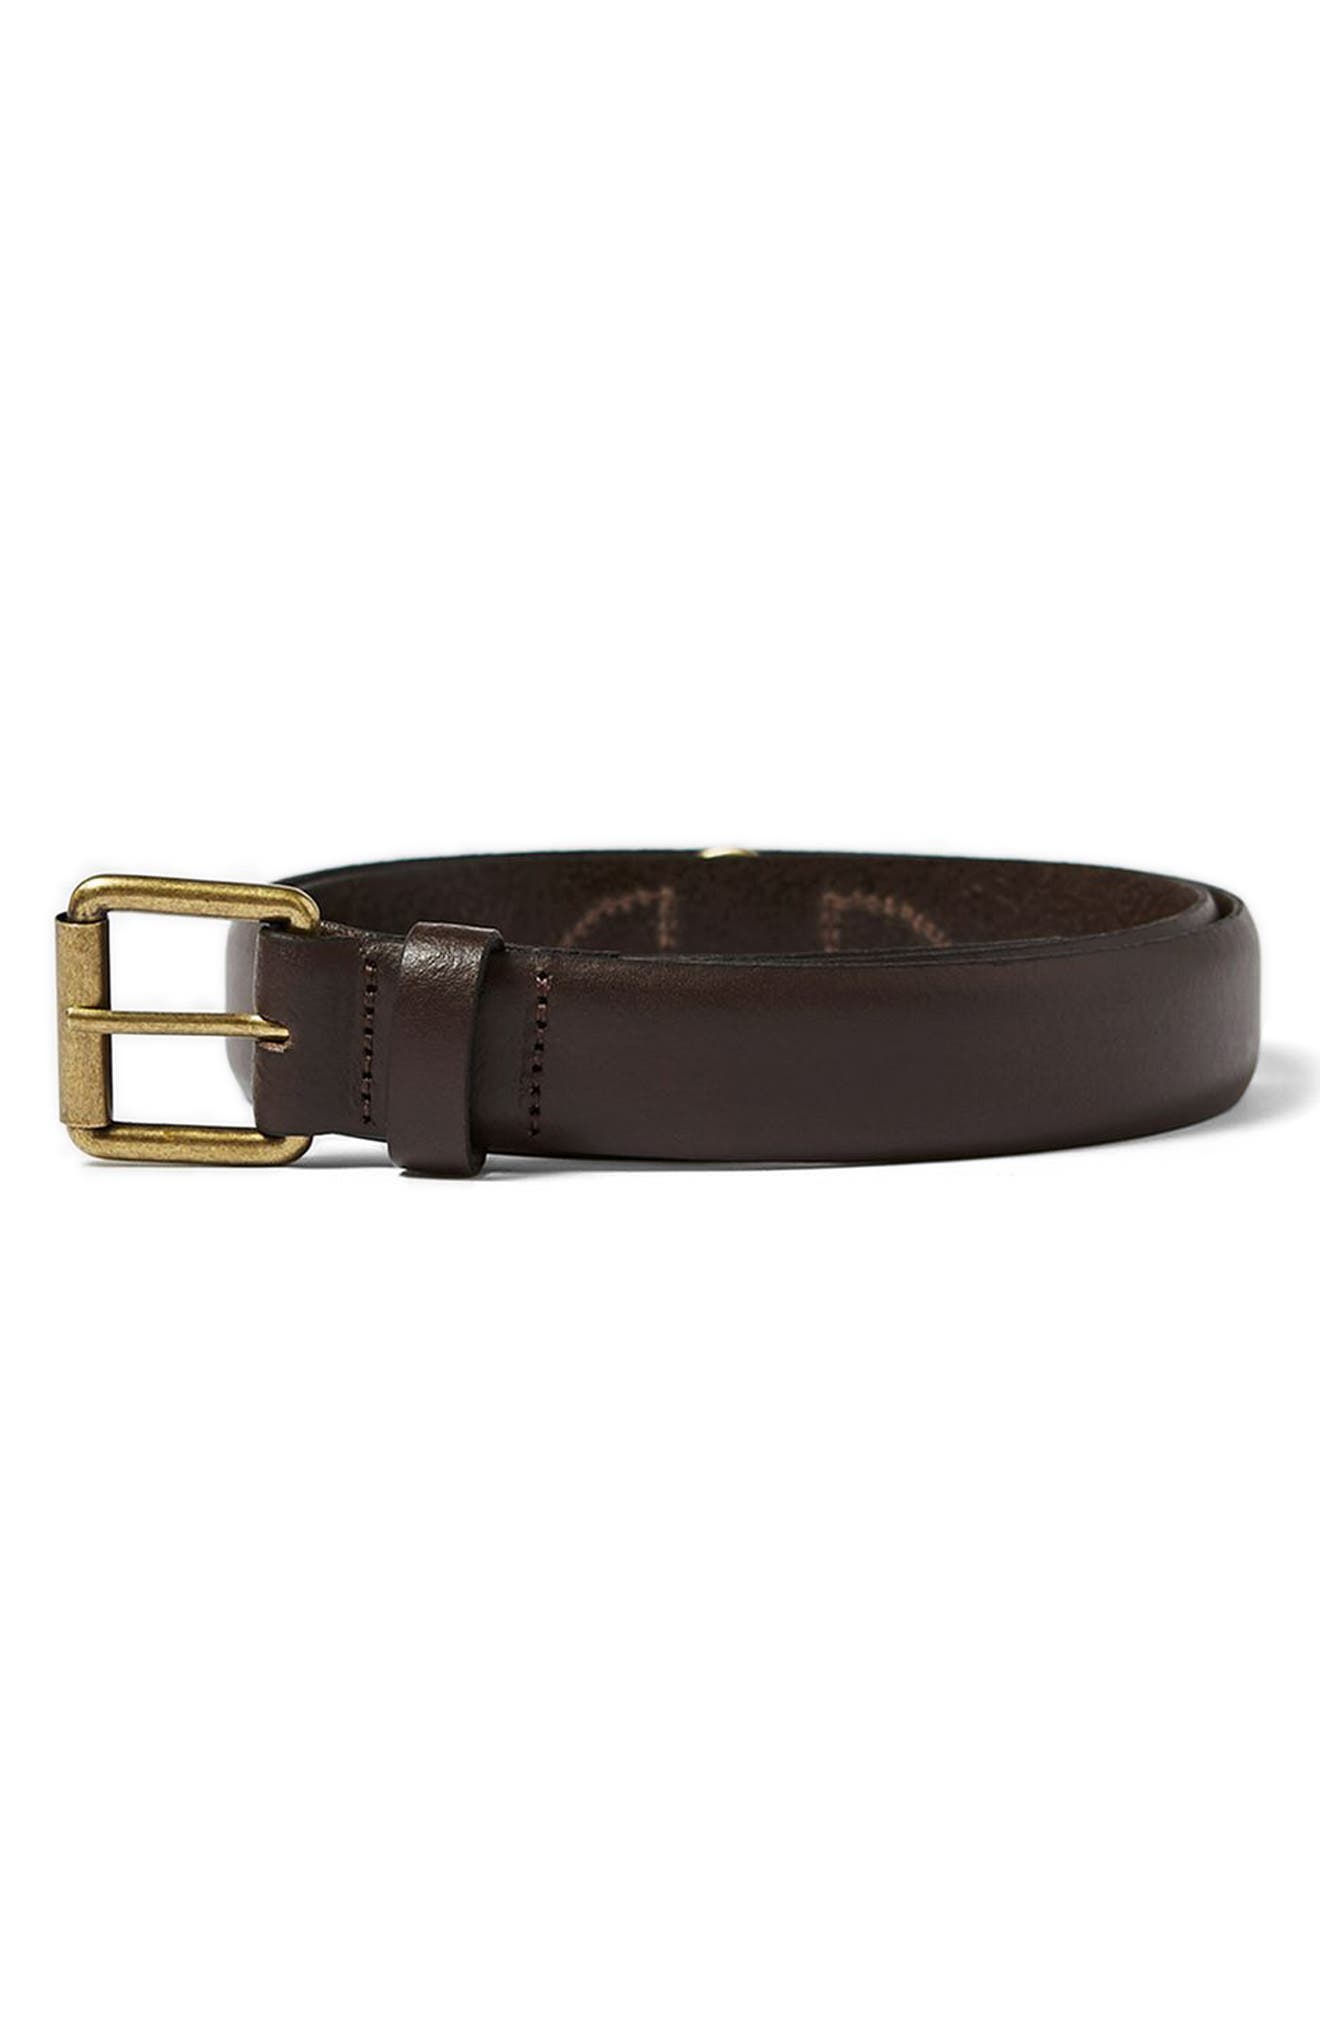 Leather Belt,                             Main thumbnail 1, color,                             201